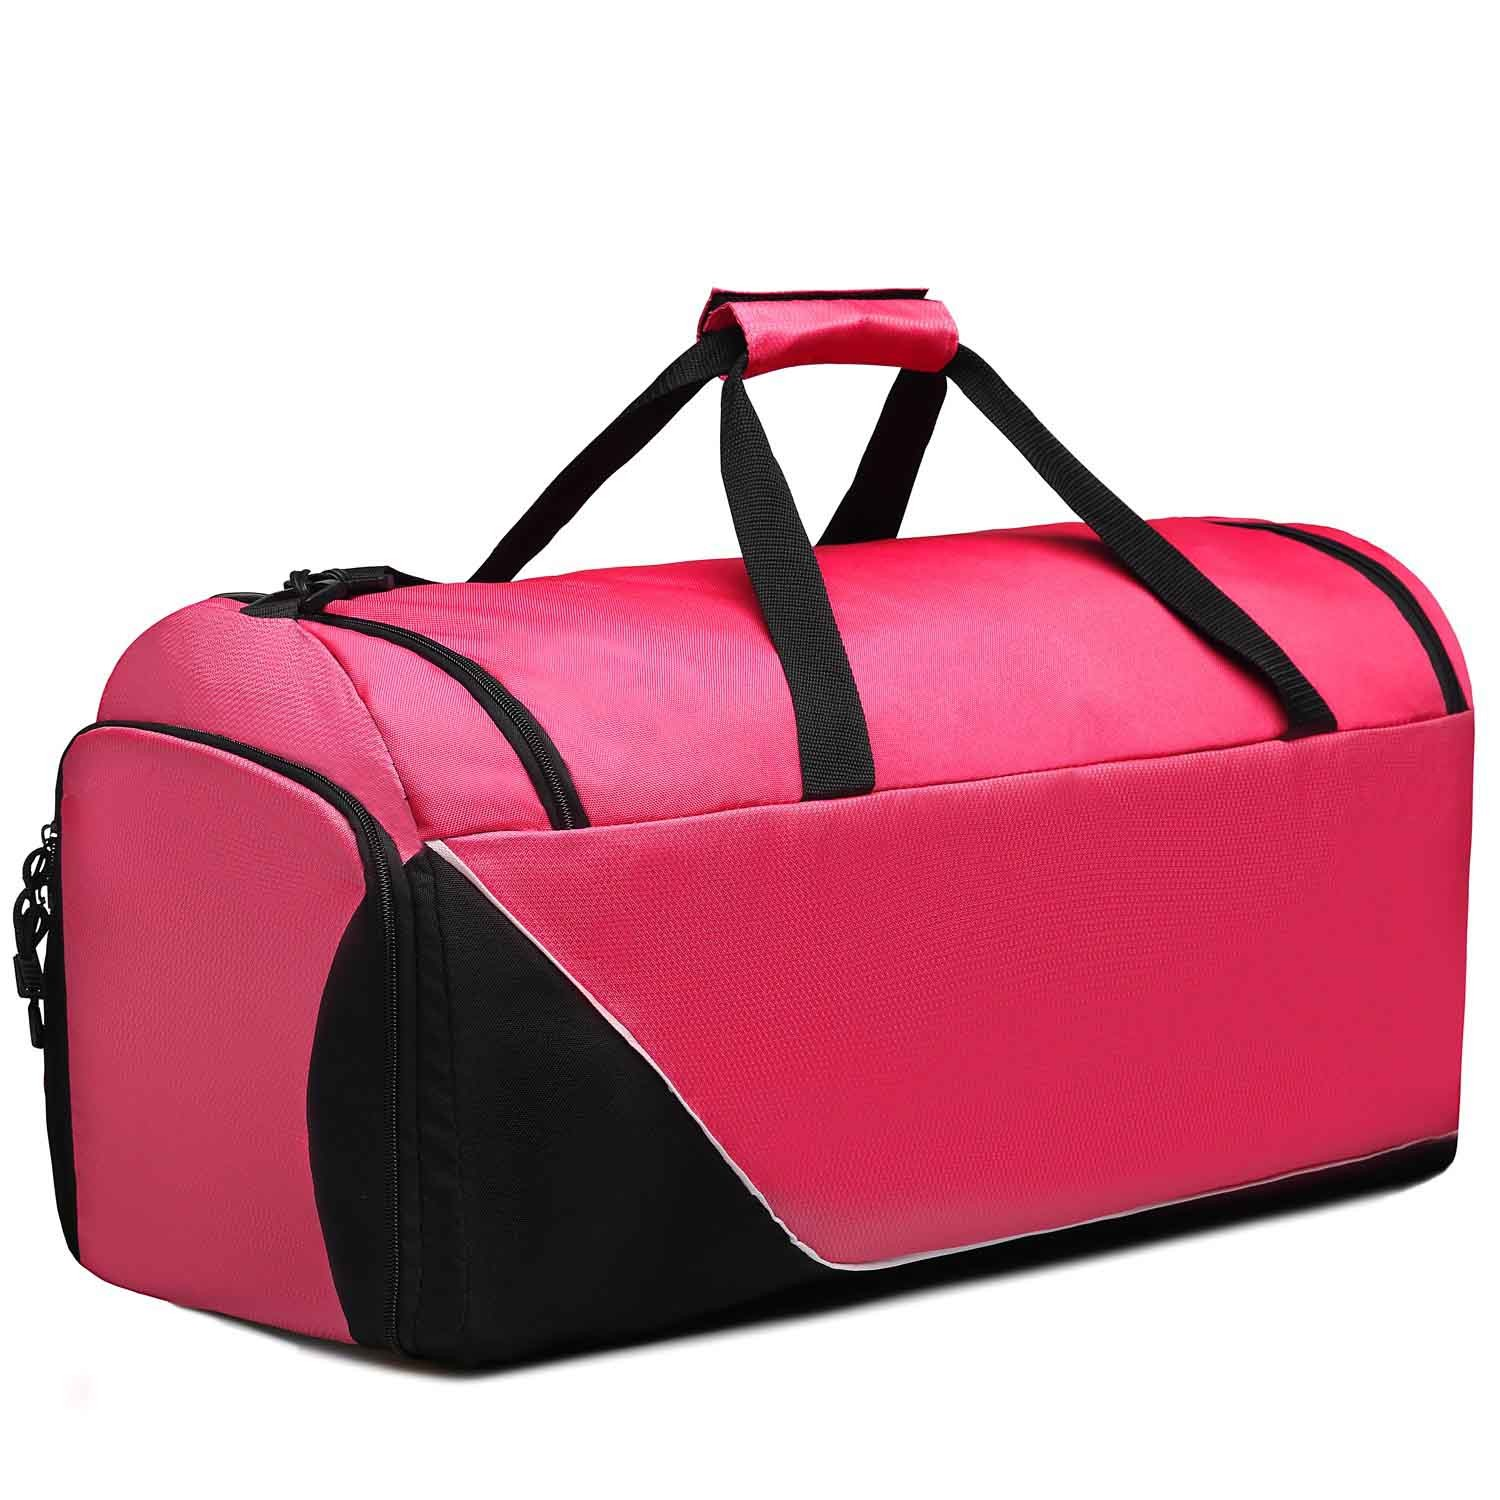 TEAM BAG Manufacturers, Wholesale Suppliers